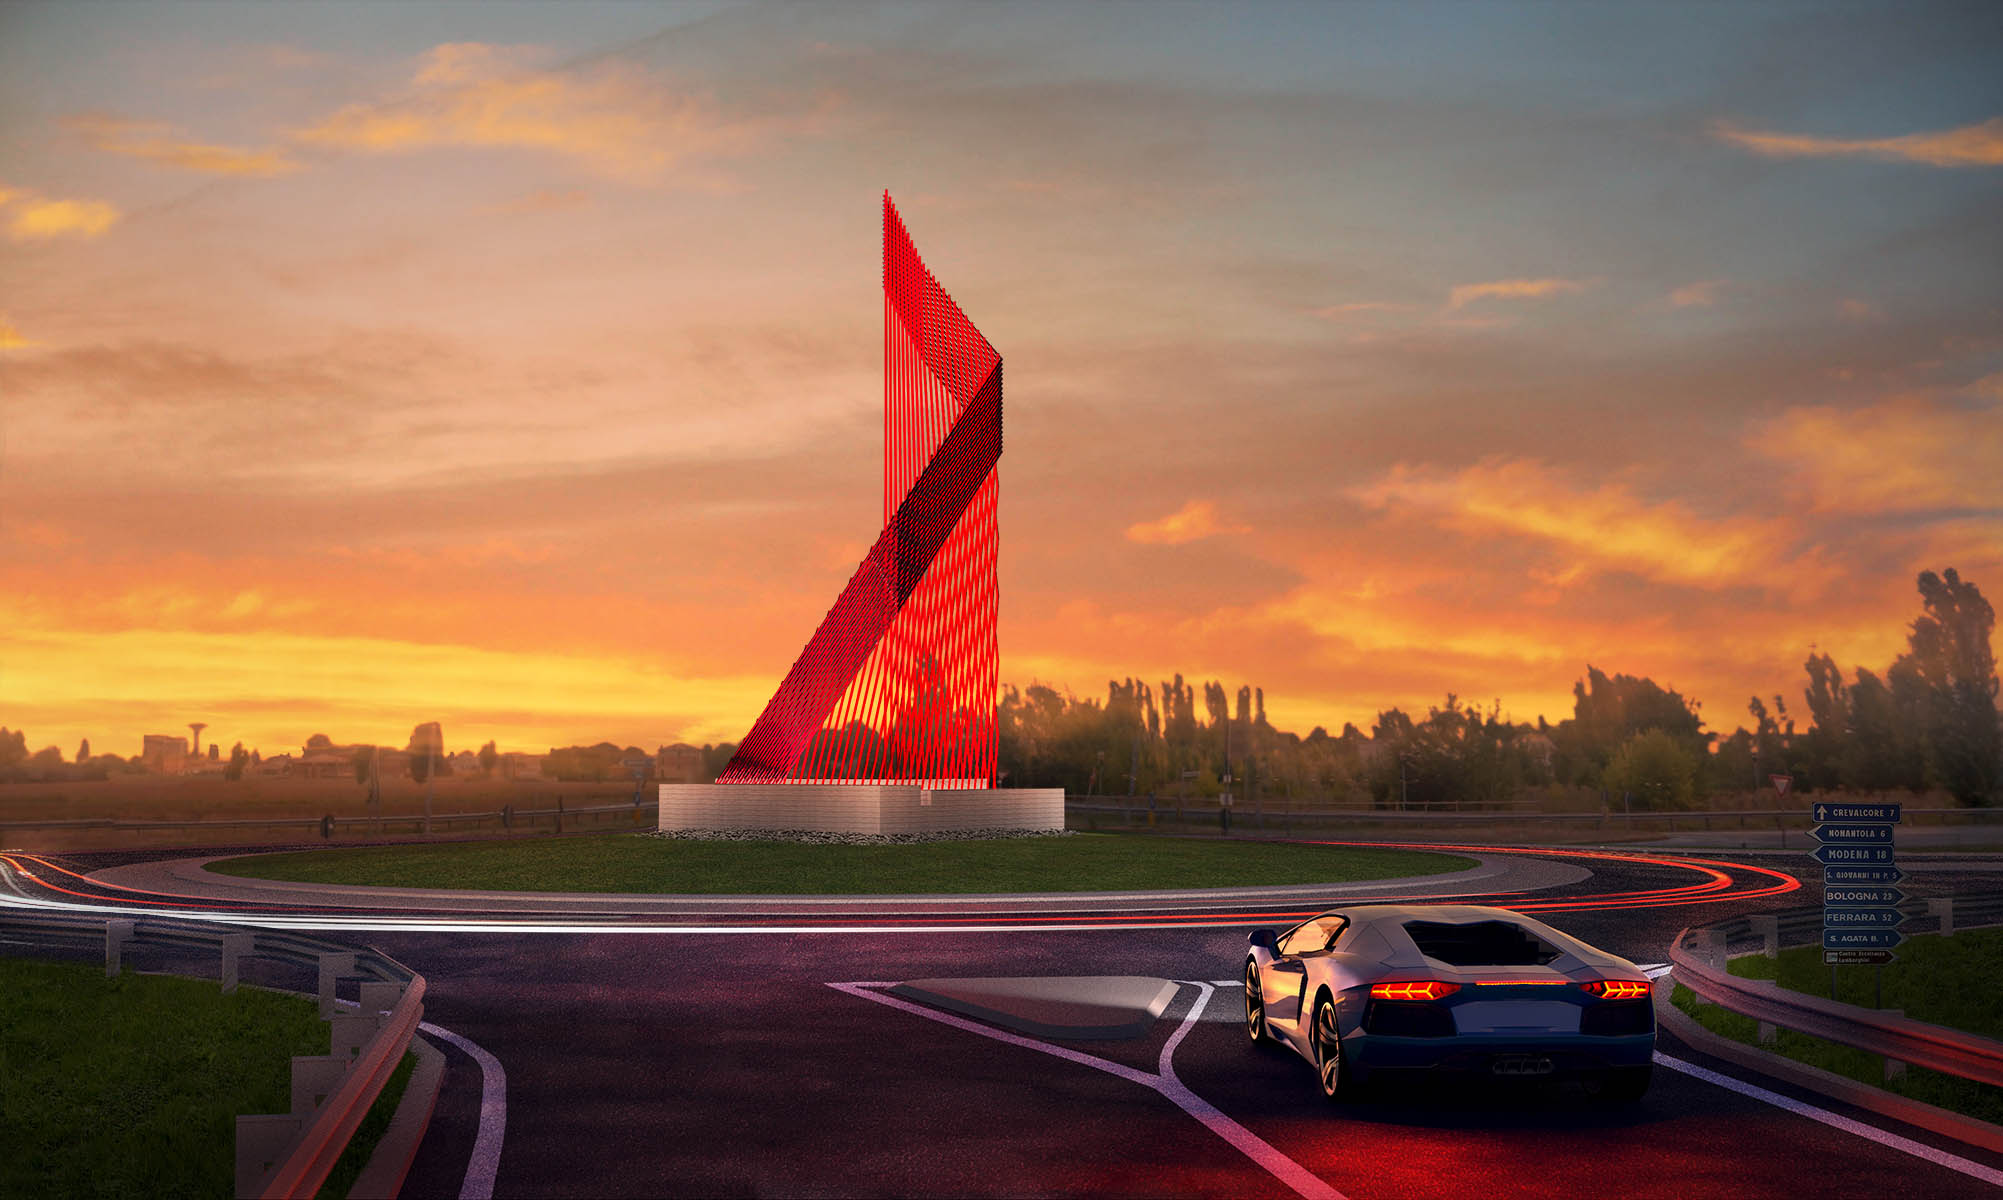 Lamborghini Road Monument Competition Architects Group Practice